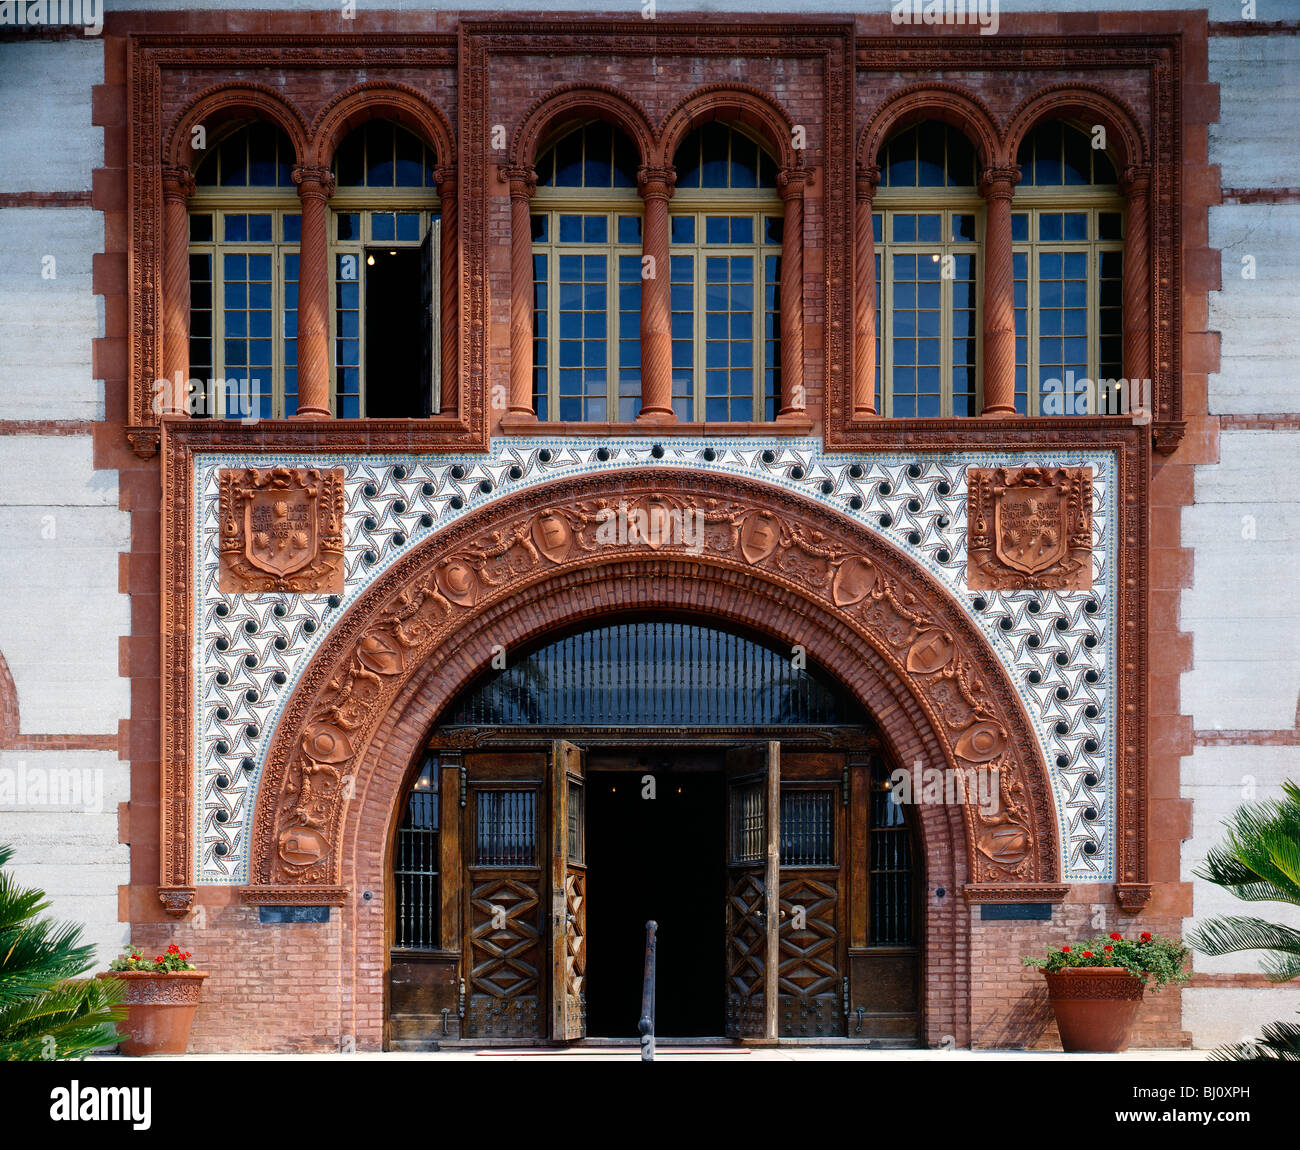 Detail Of Building At Flagler College, 1888 Spanish Renaissance Style  Architecture, St. Augustine, Florida, USA